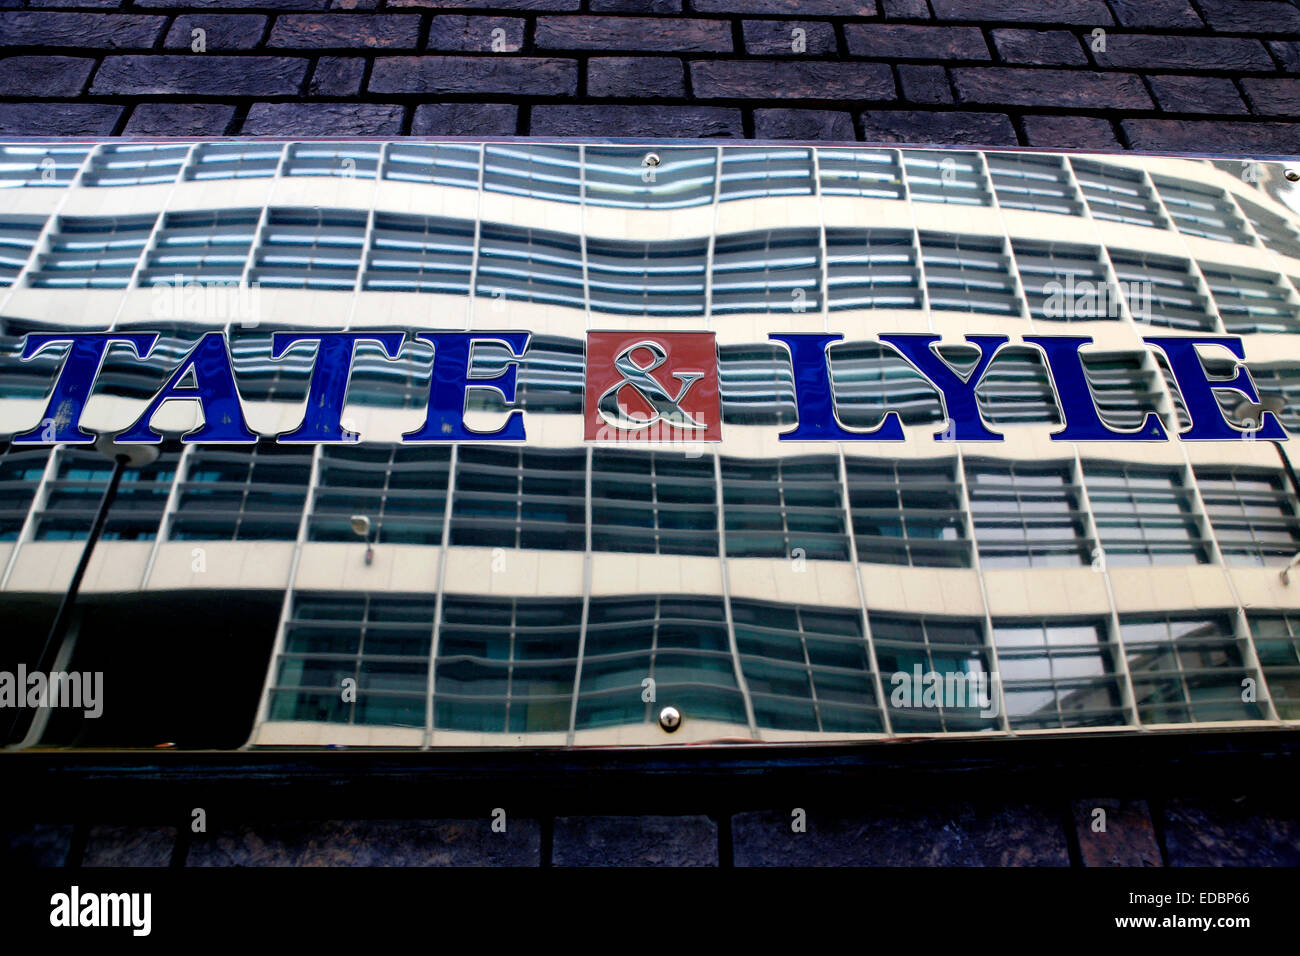 The logo of Tate & Lyle on the fascade of the company's office building on Lower Thames Street, London. - Stock Image